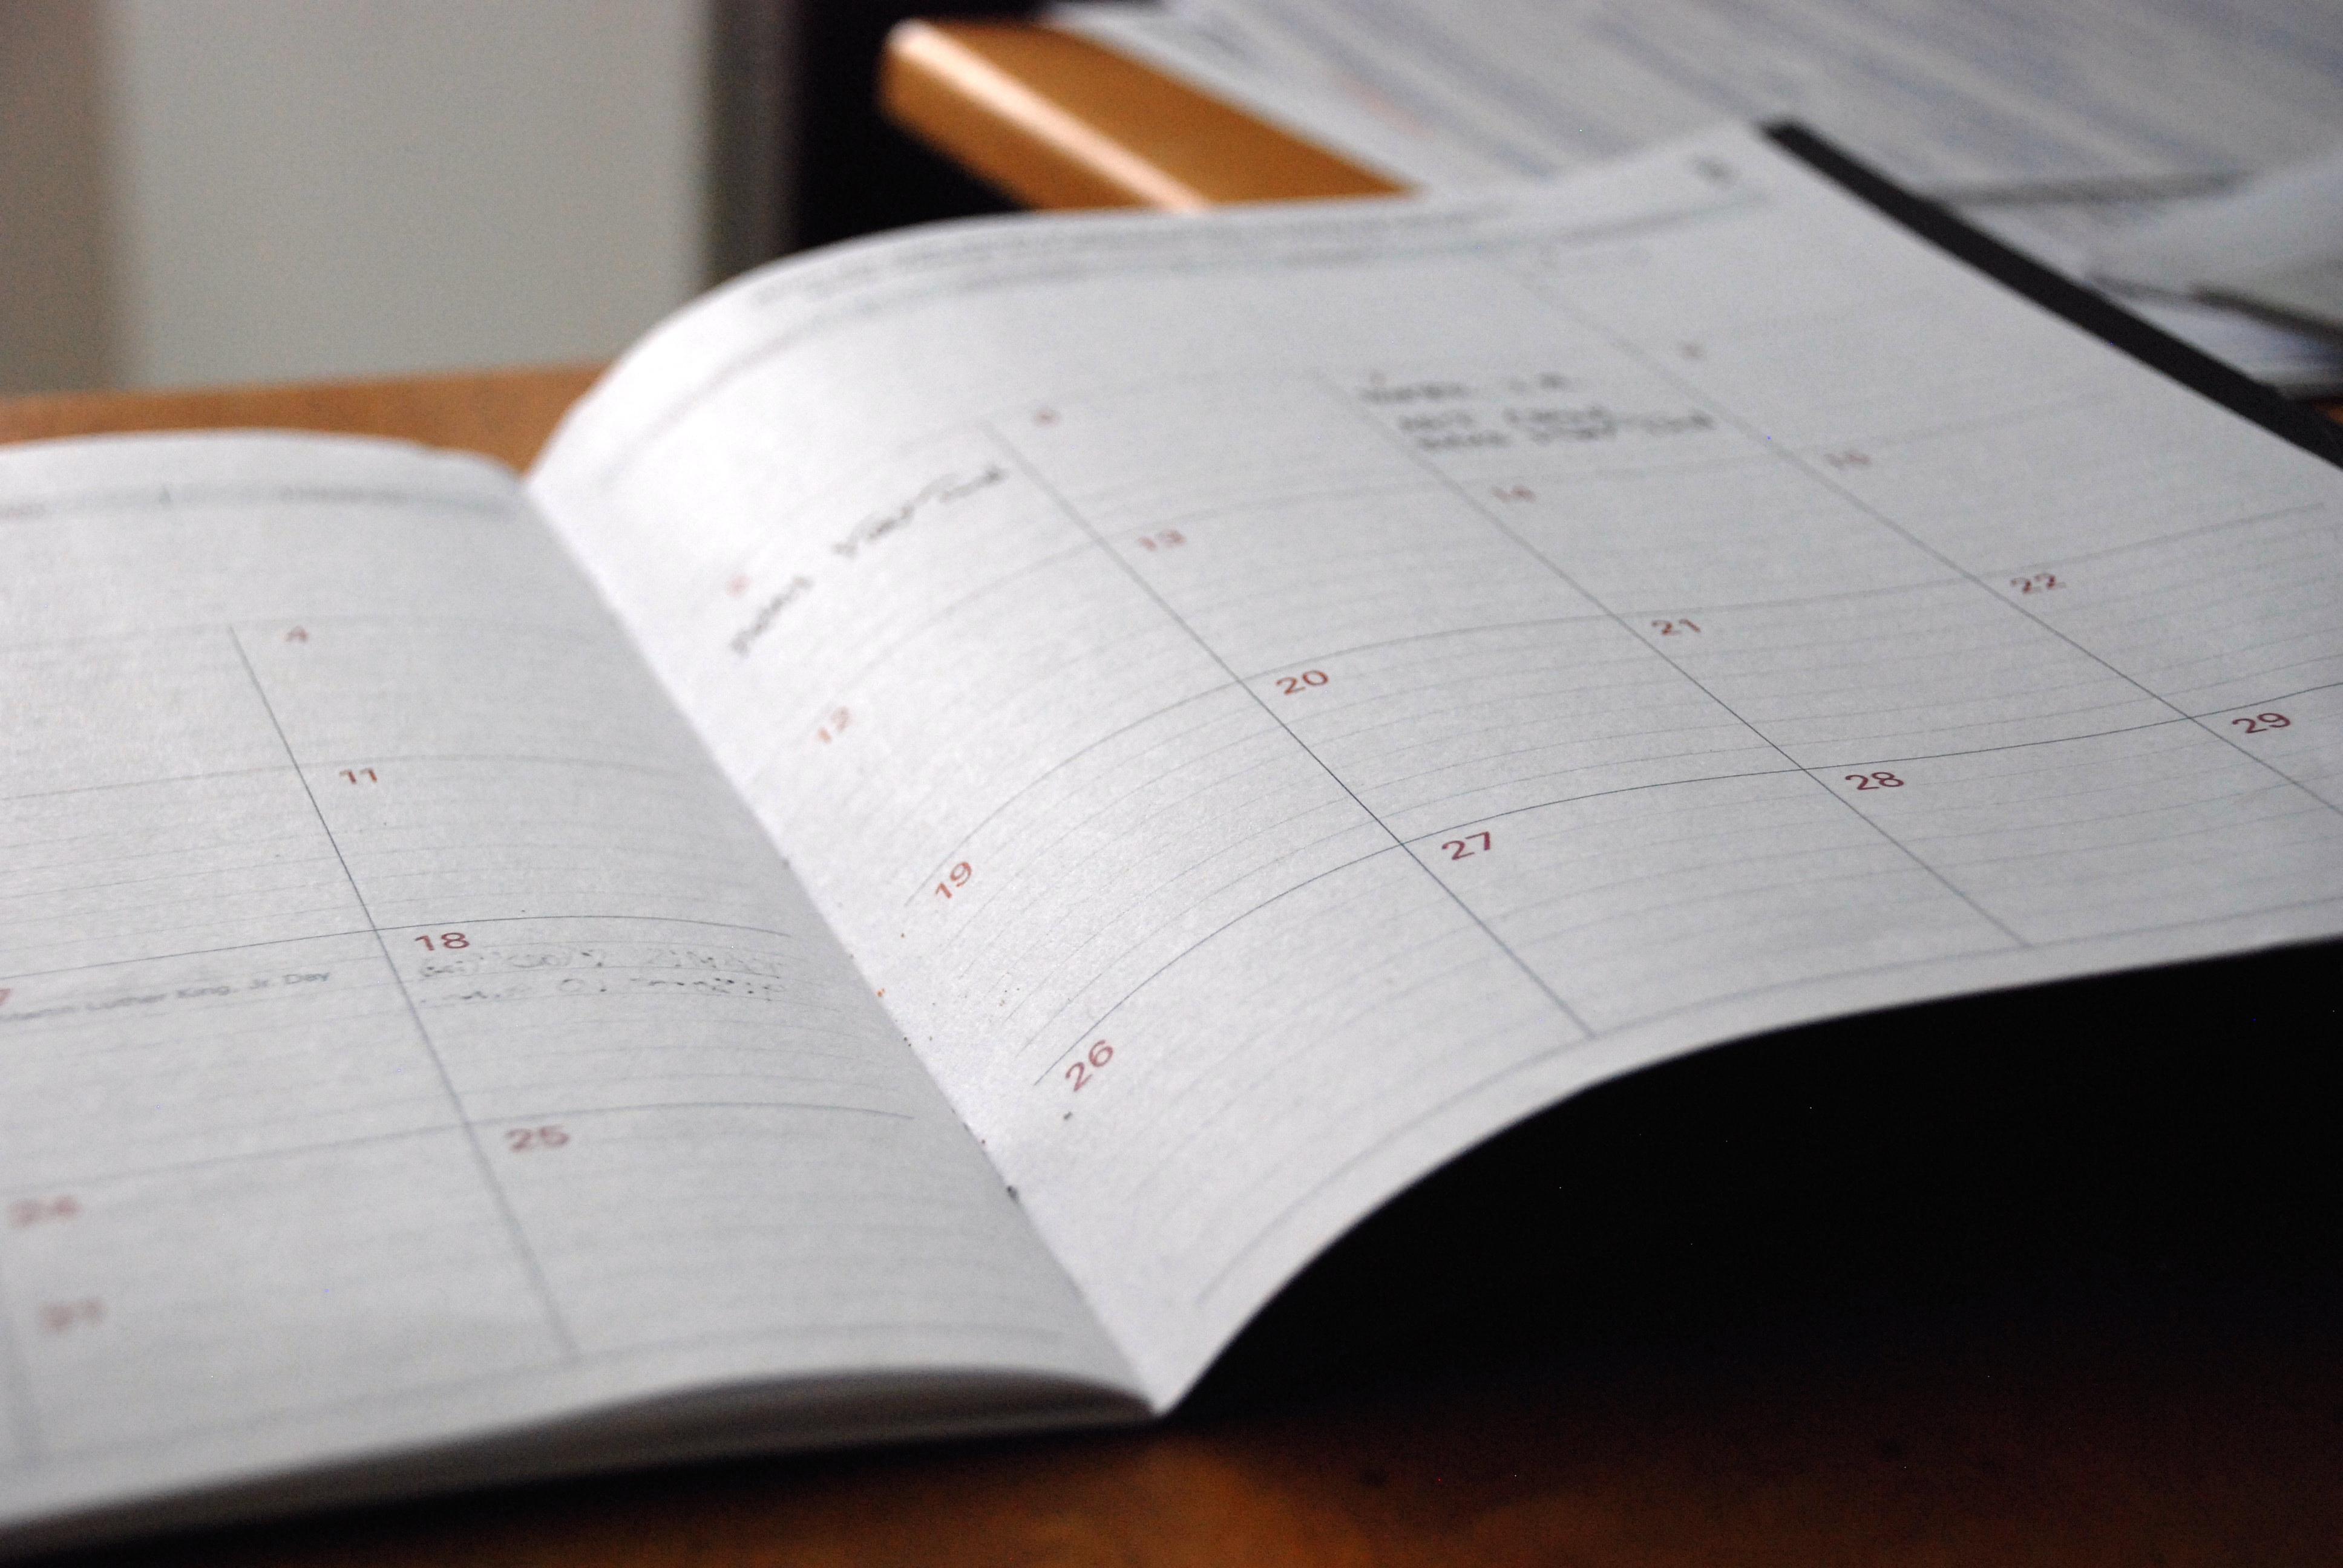 timetable of specific tasks